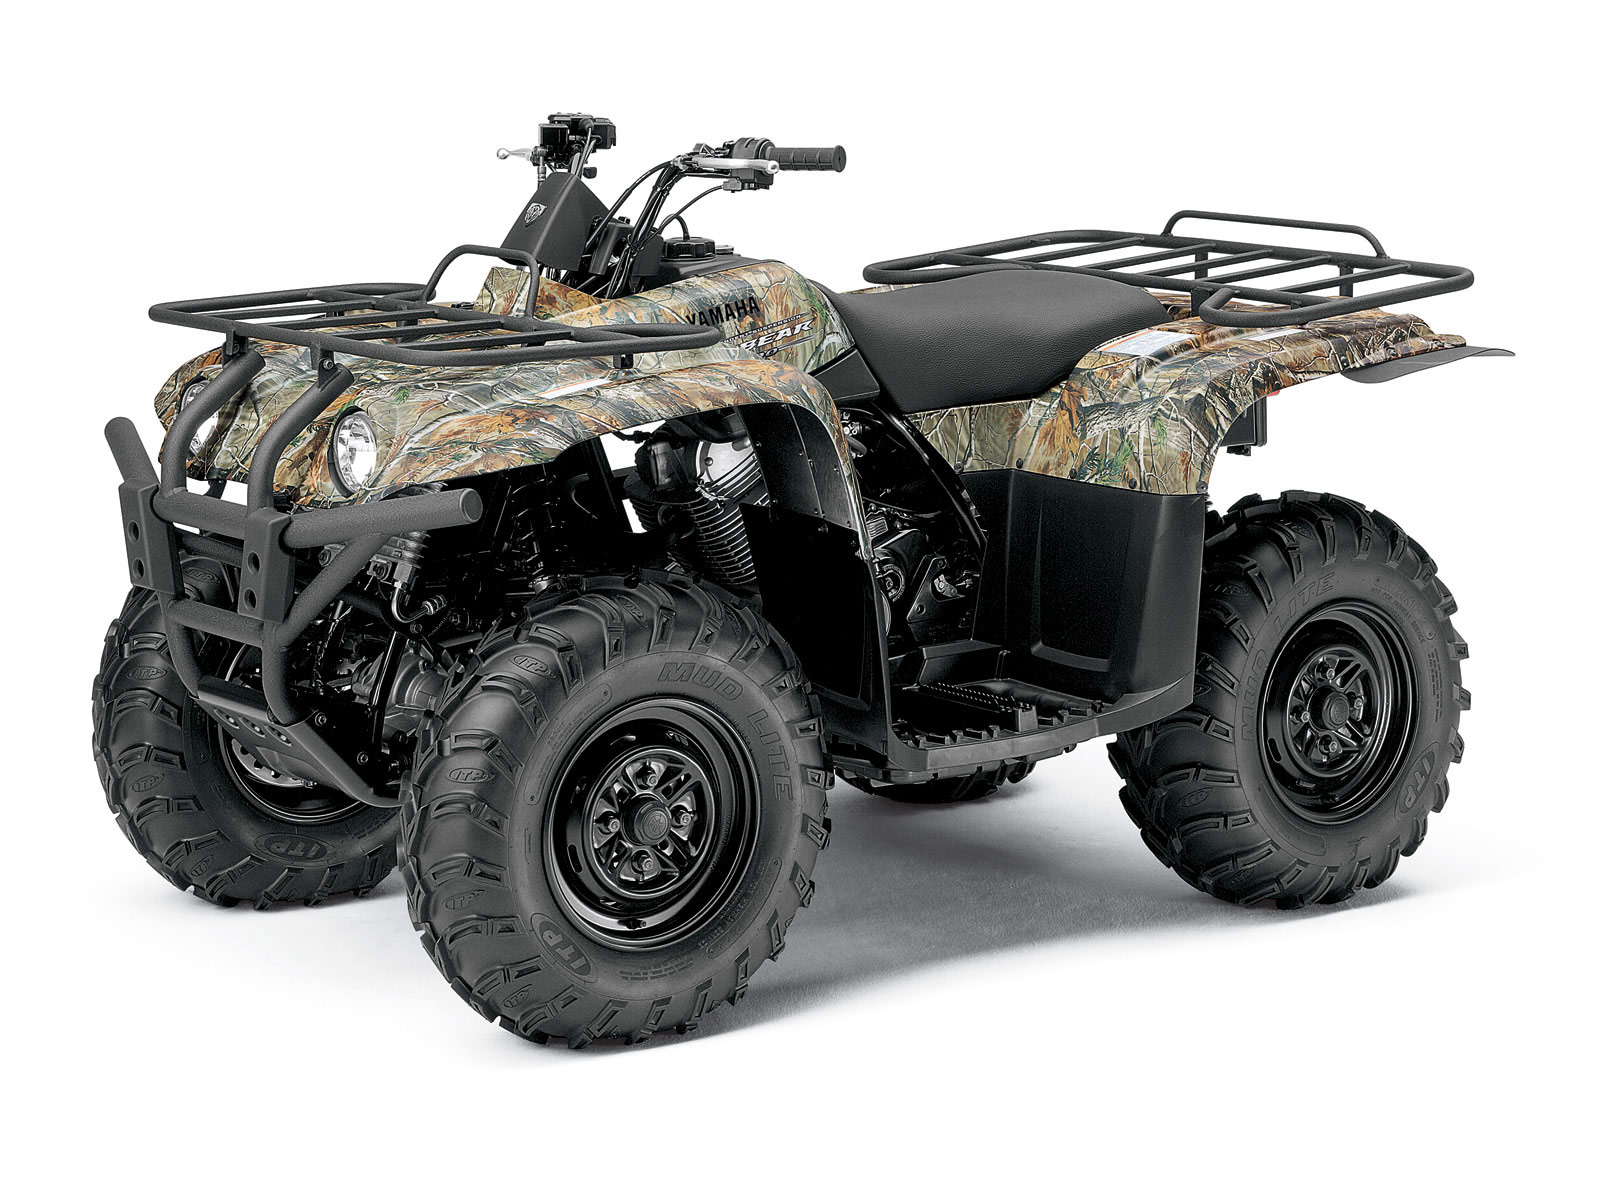 atv pictures 2012 yamaha big bear 400 4x4 irs